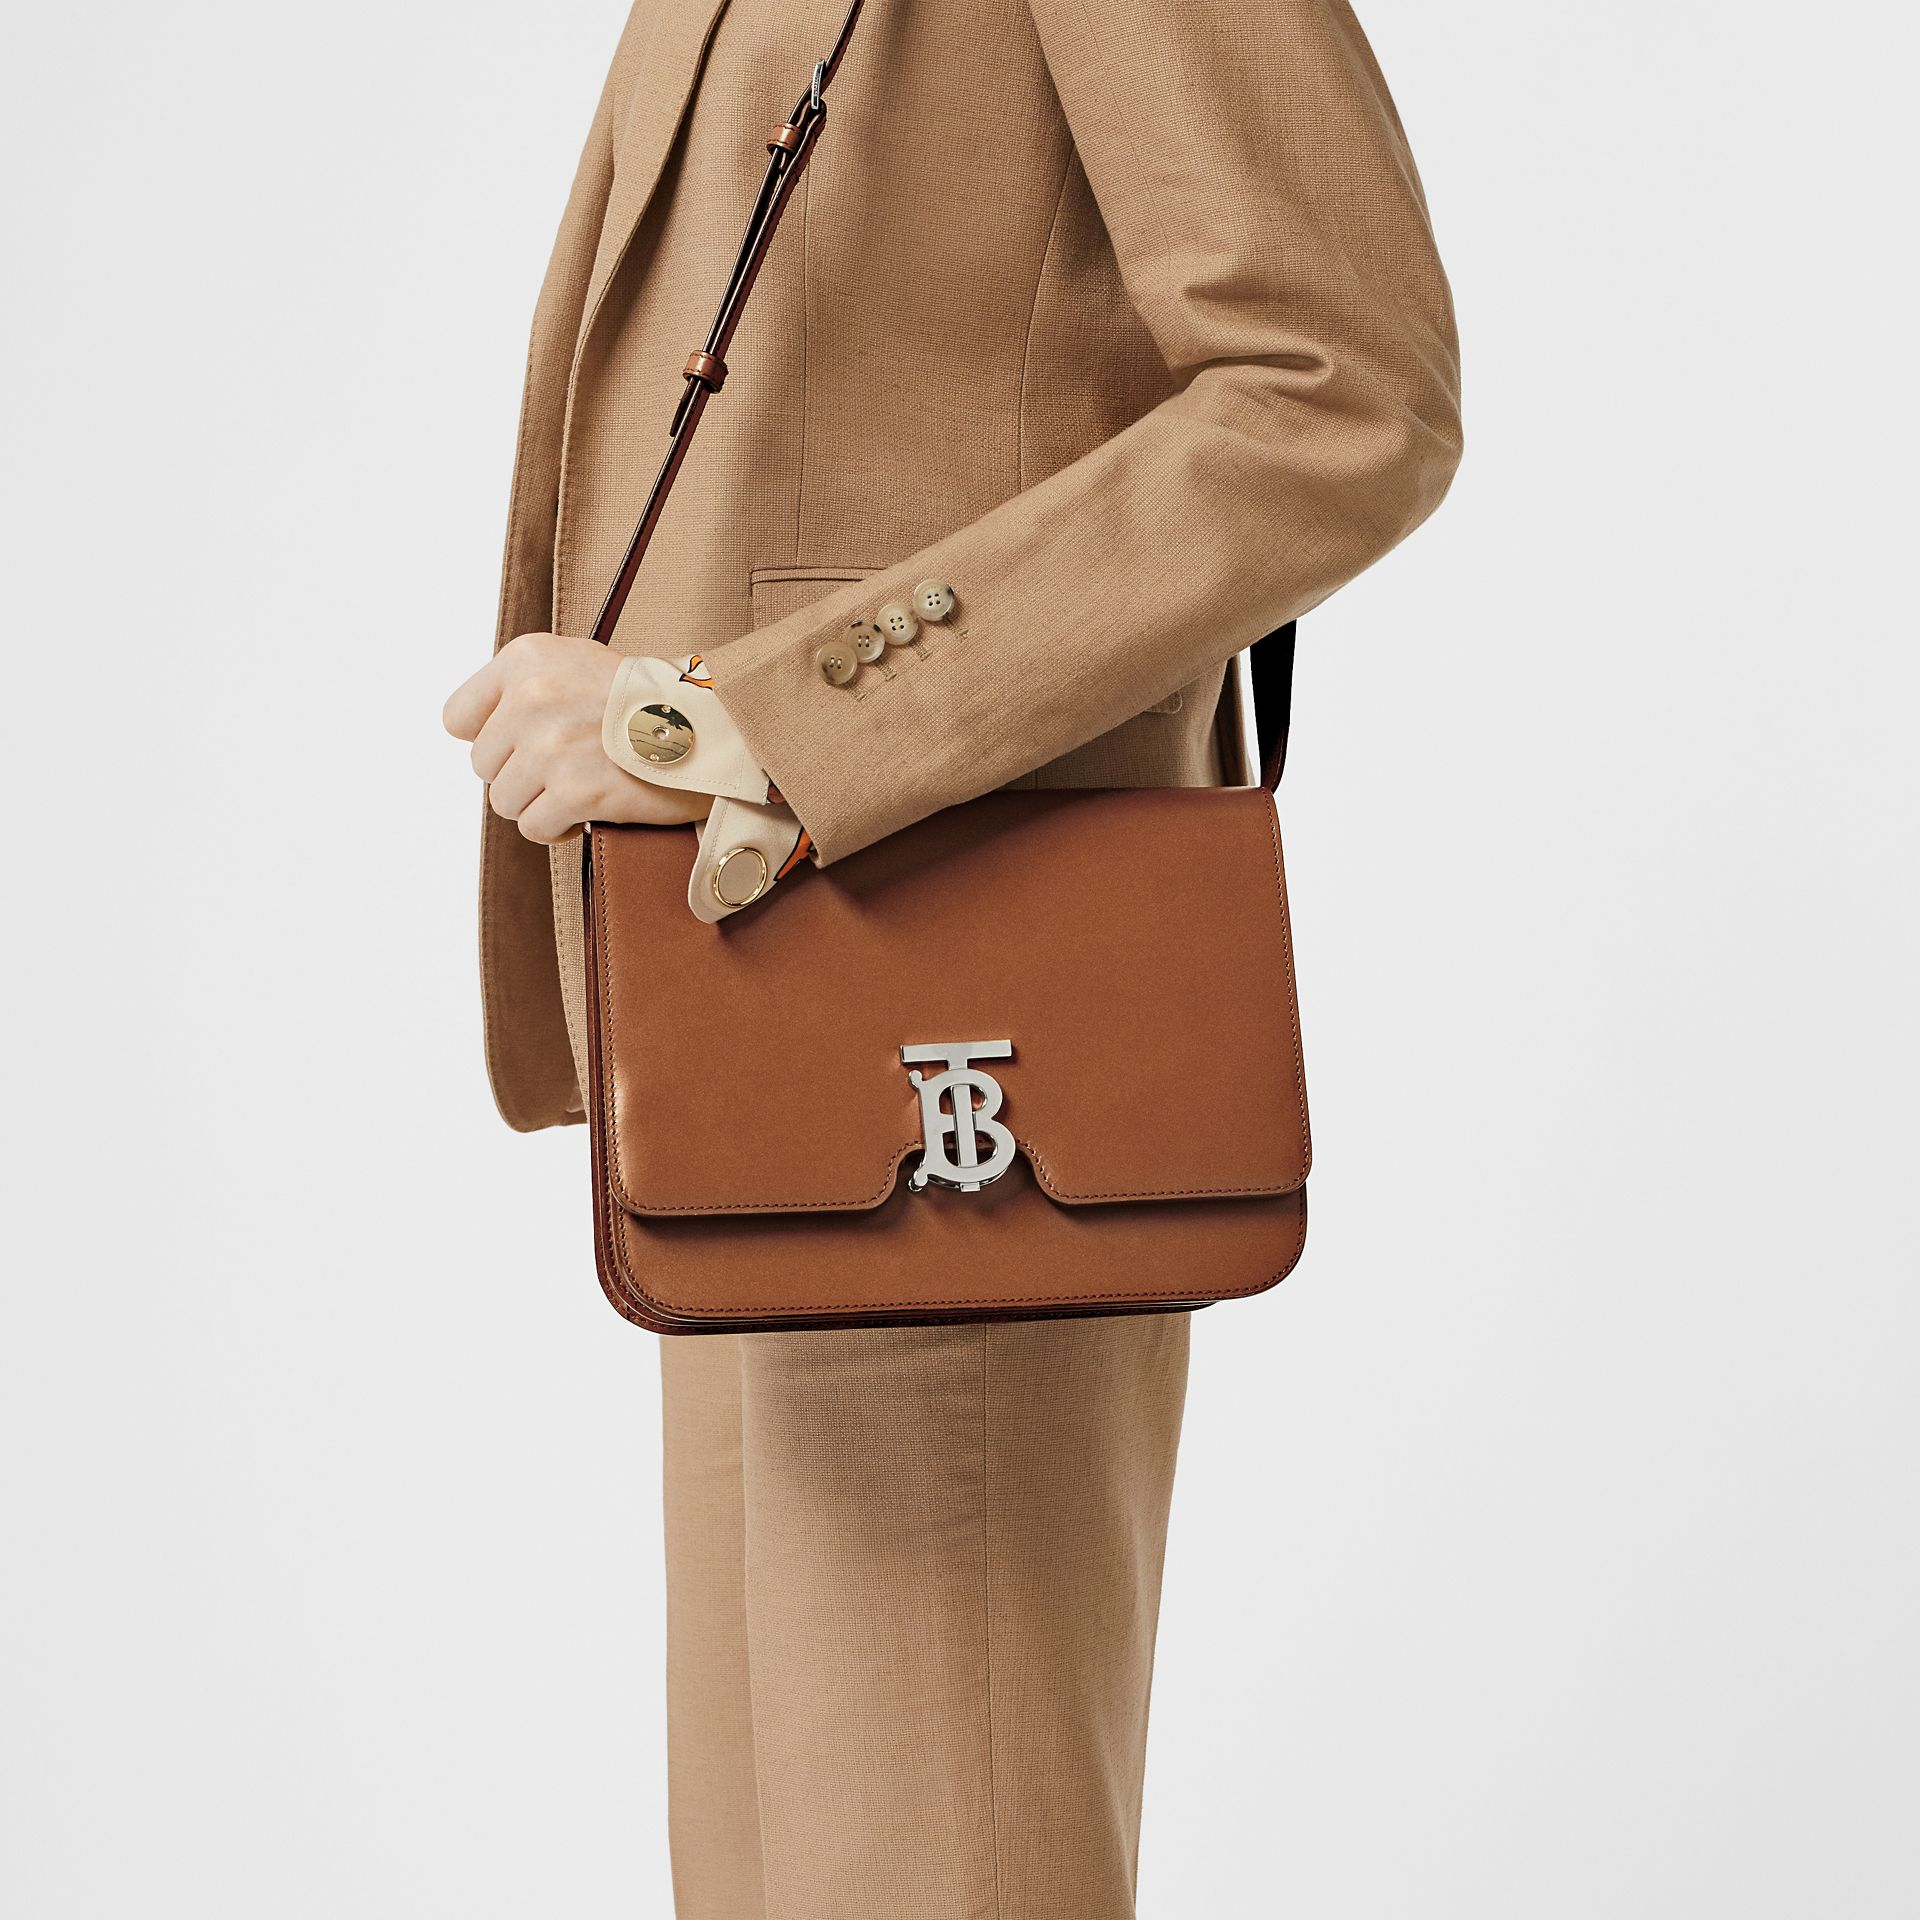 Medium Leather TB Bag in Malt Brown - Women | Burberry Hong Kong - gallery image 2